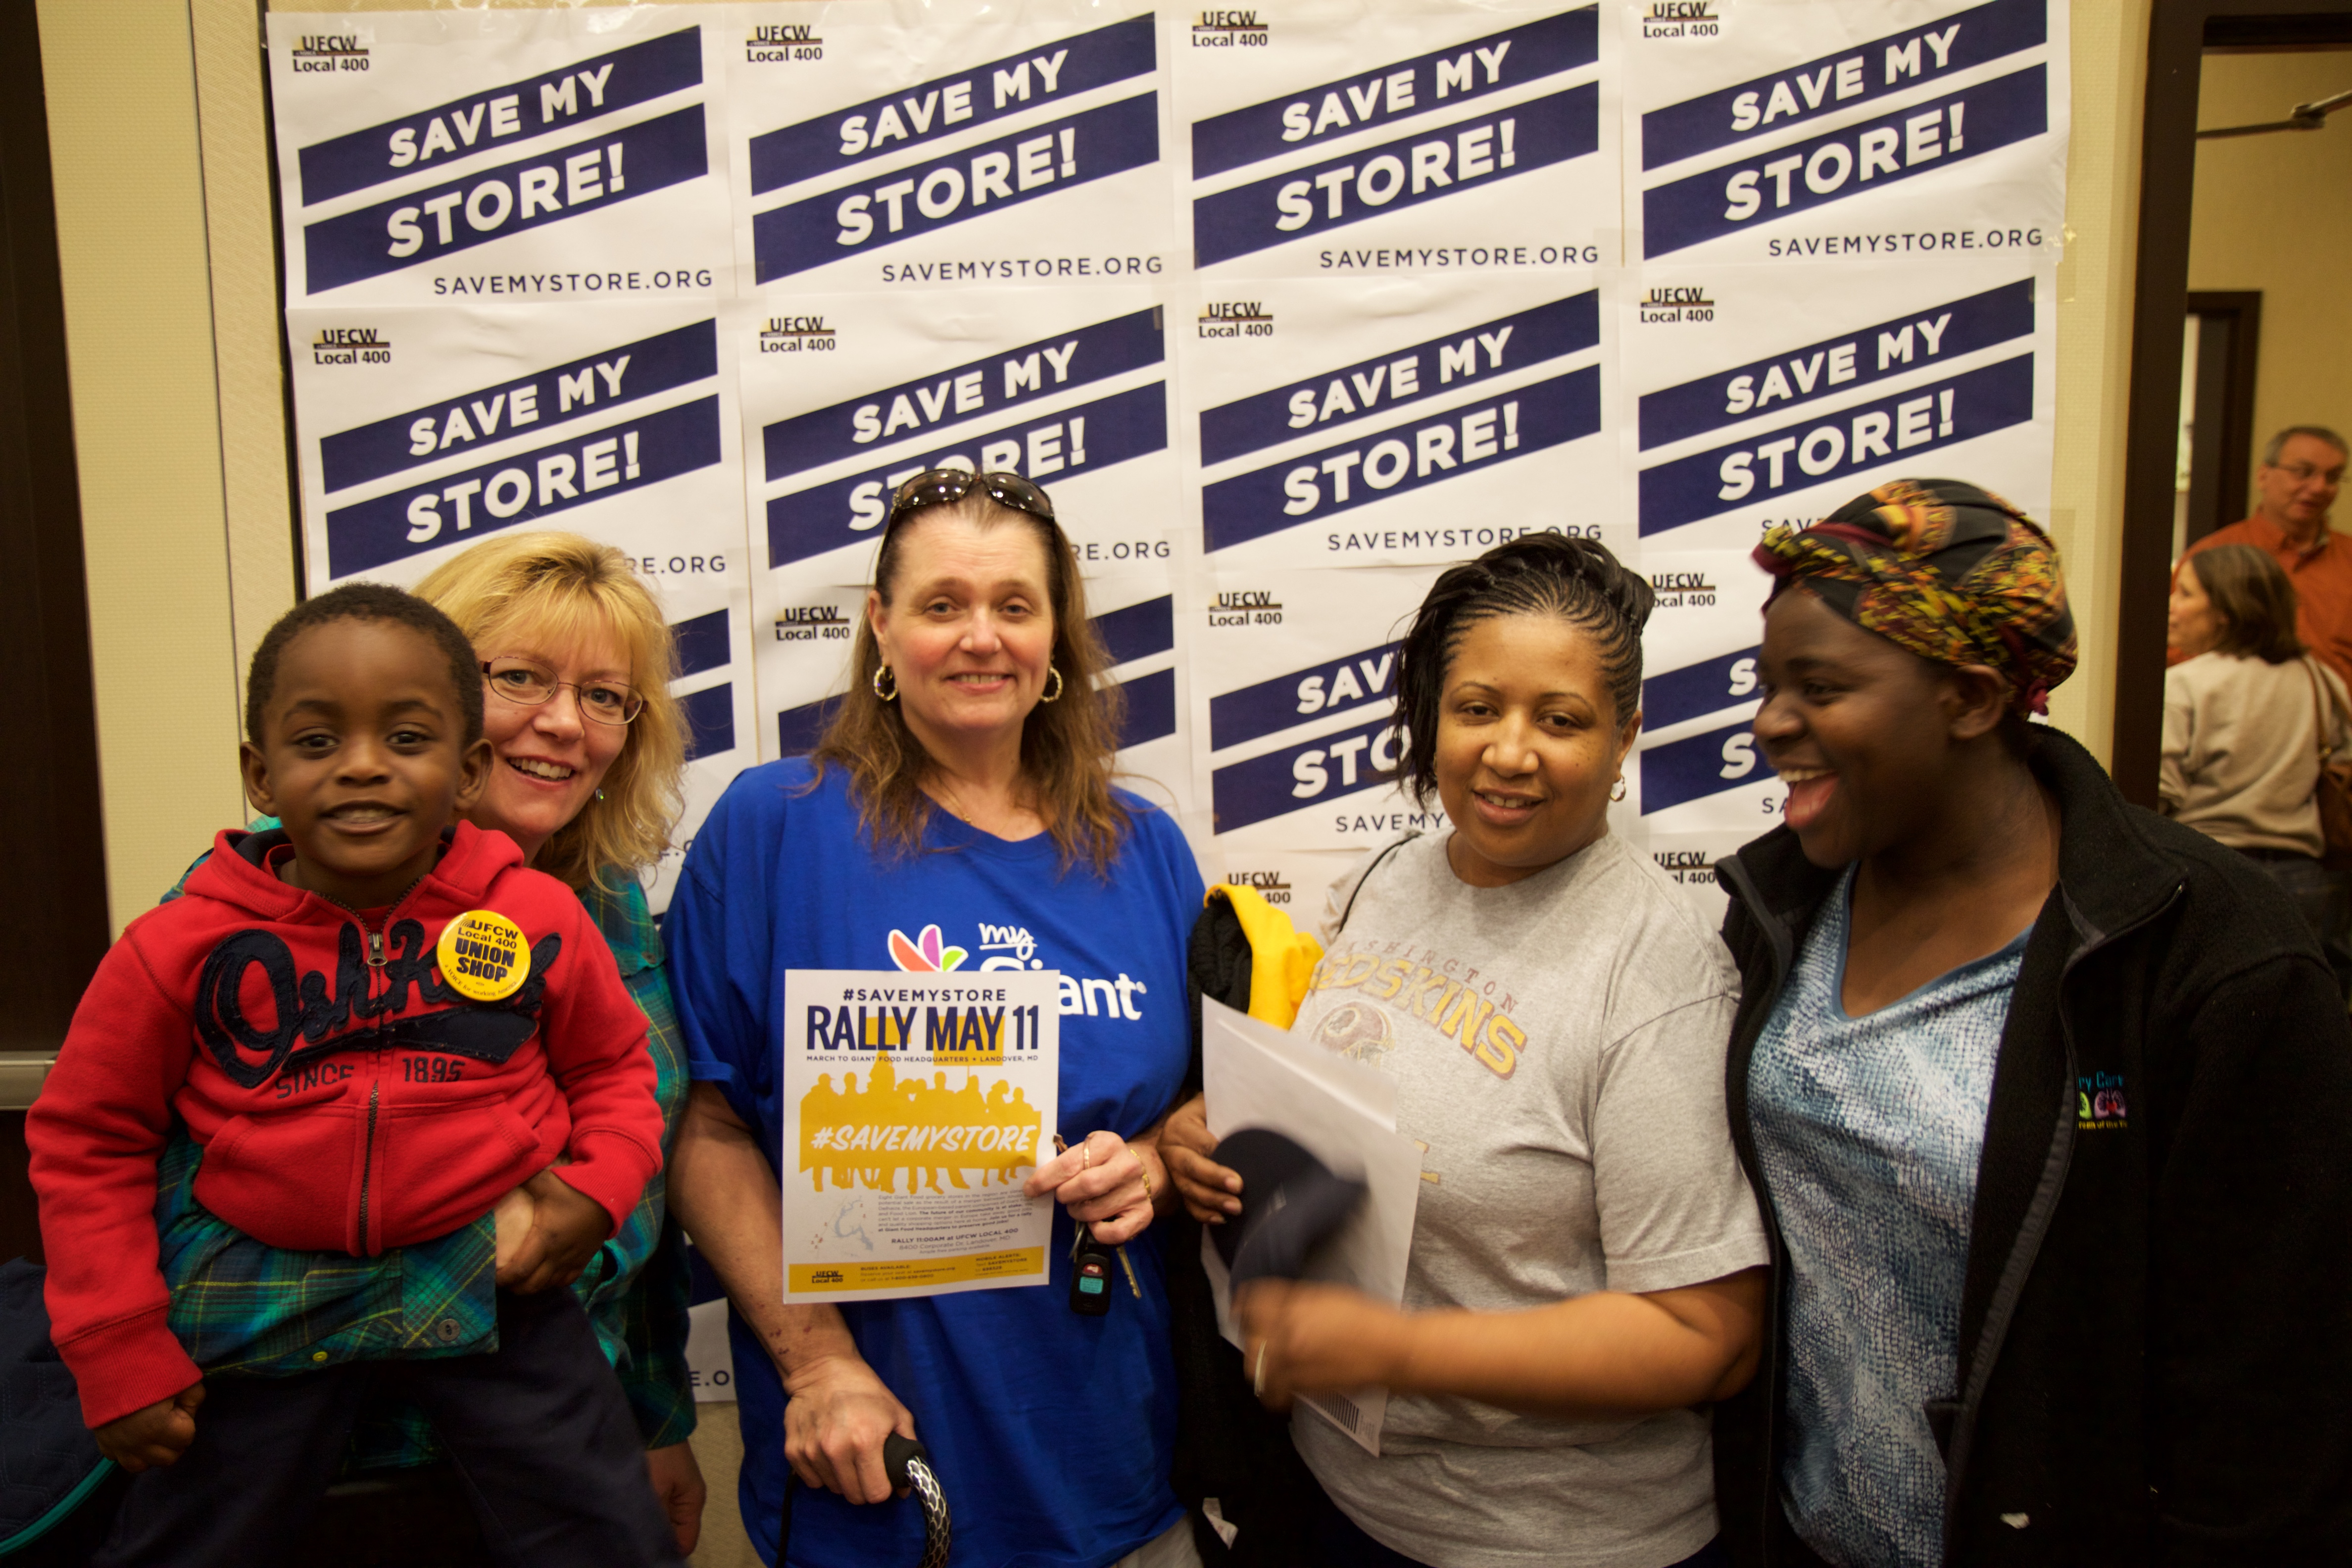 20160412-Fredericksburg Save My Store Town Hall - 14